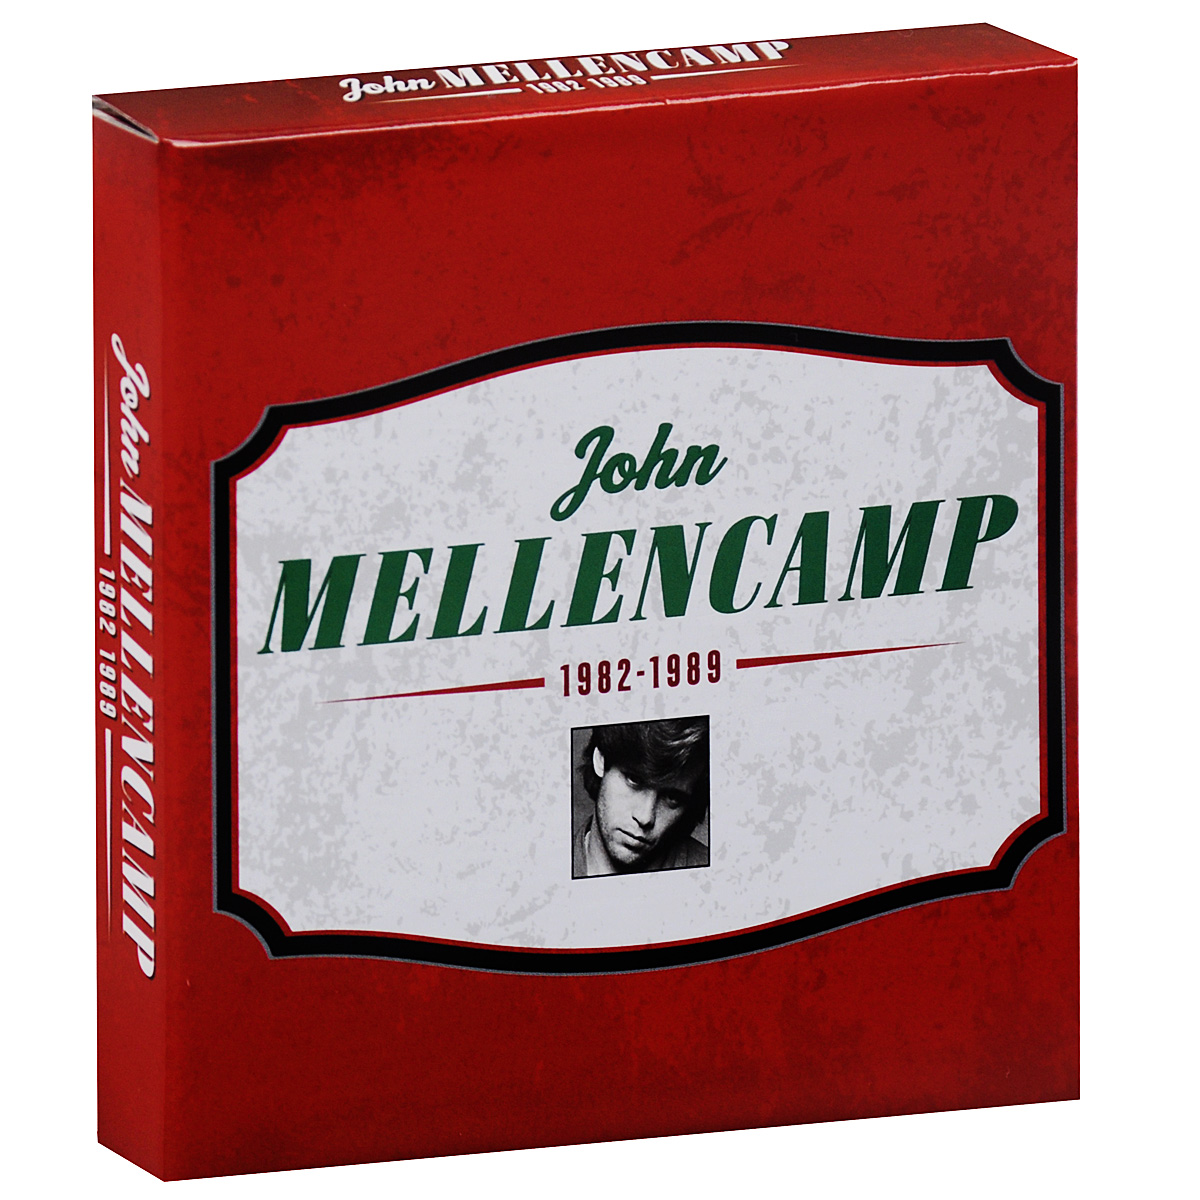 Джон Мелленкамп John Mellencamp. 1982-1989 (5 CD) the jam the jam all mod cons lp